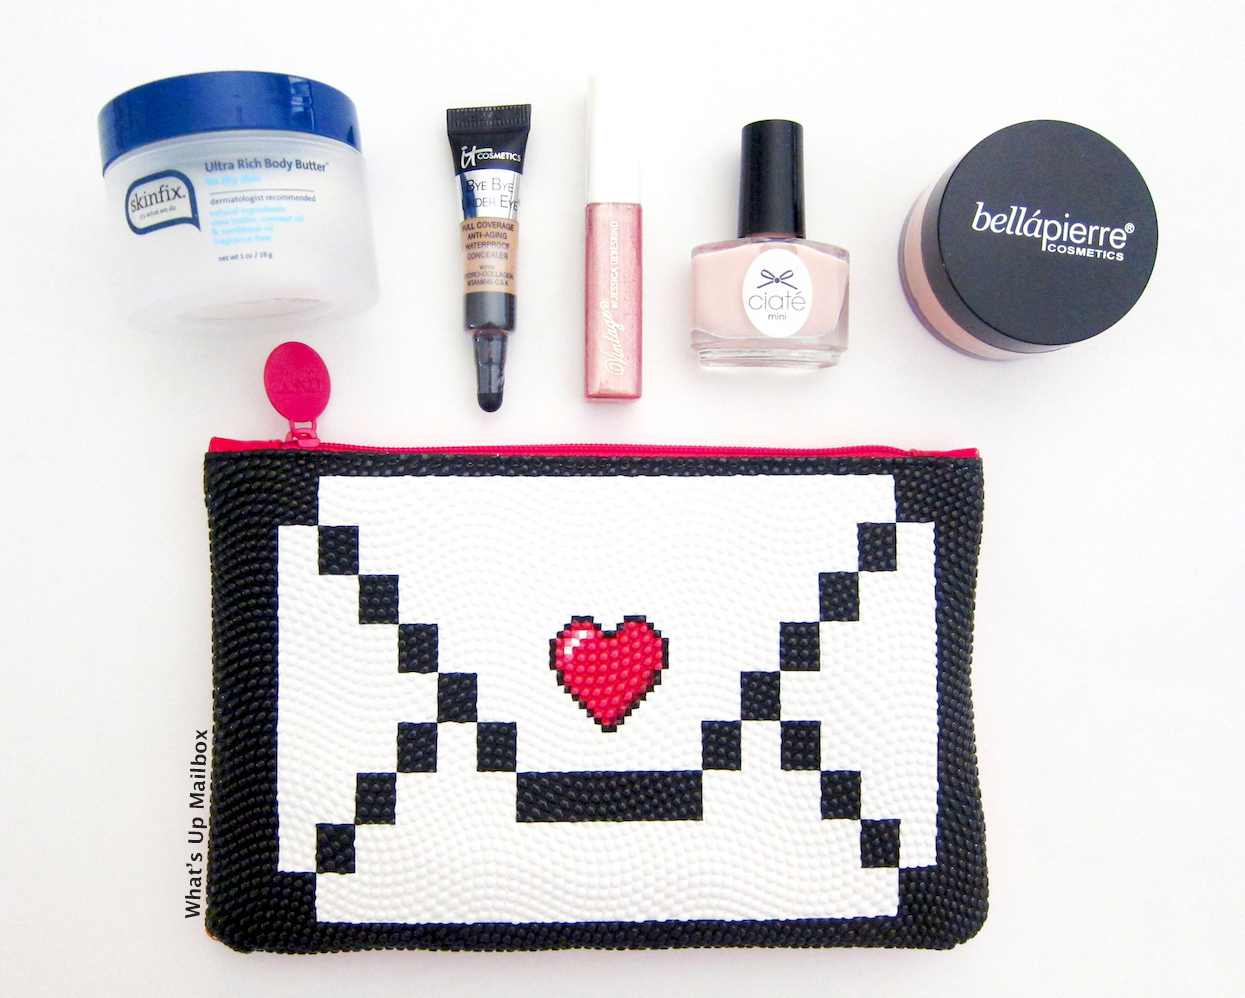 My Ipsy February 2016 Glam Bag Items!